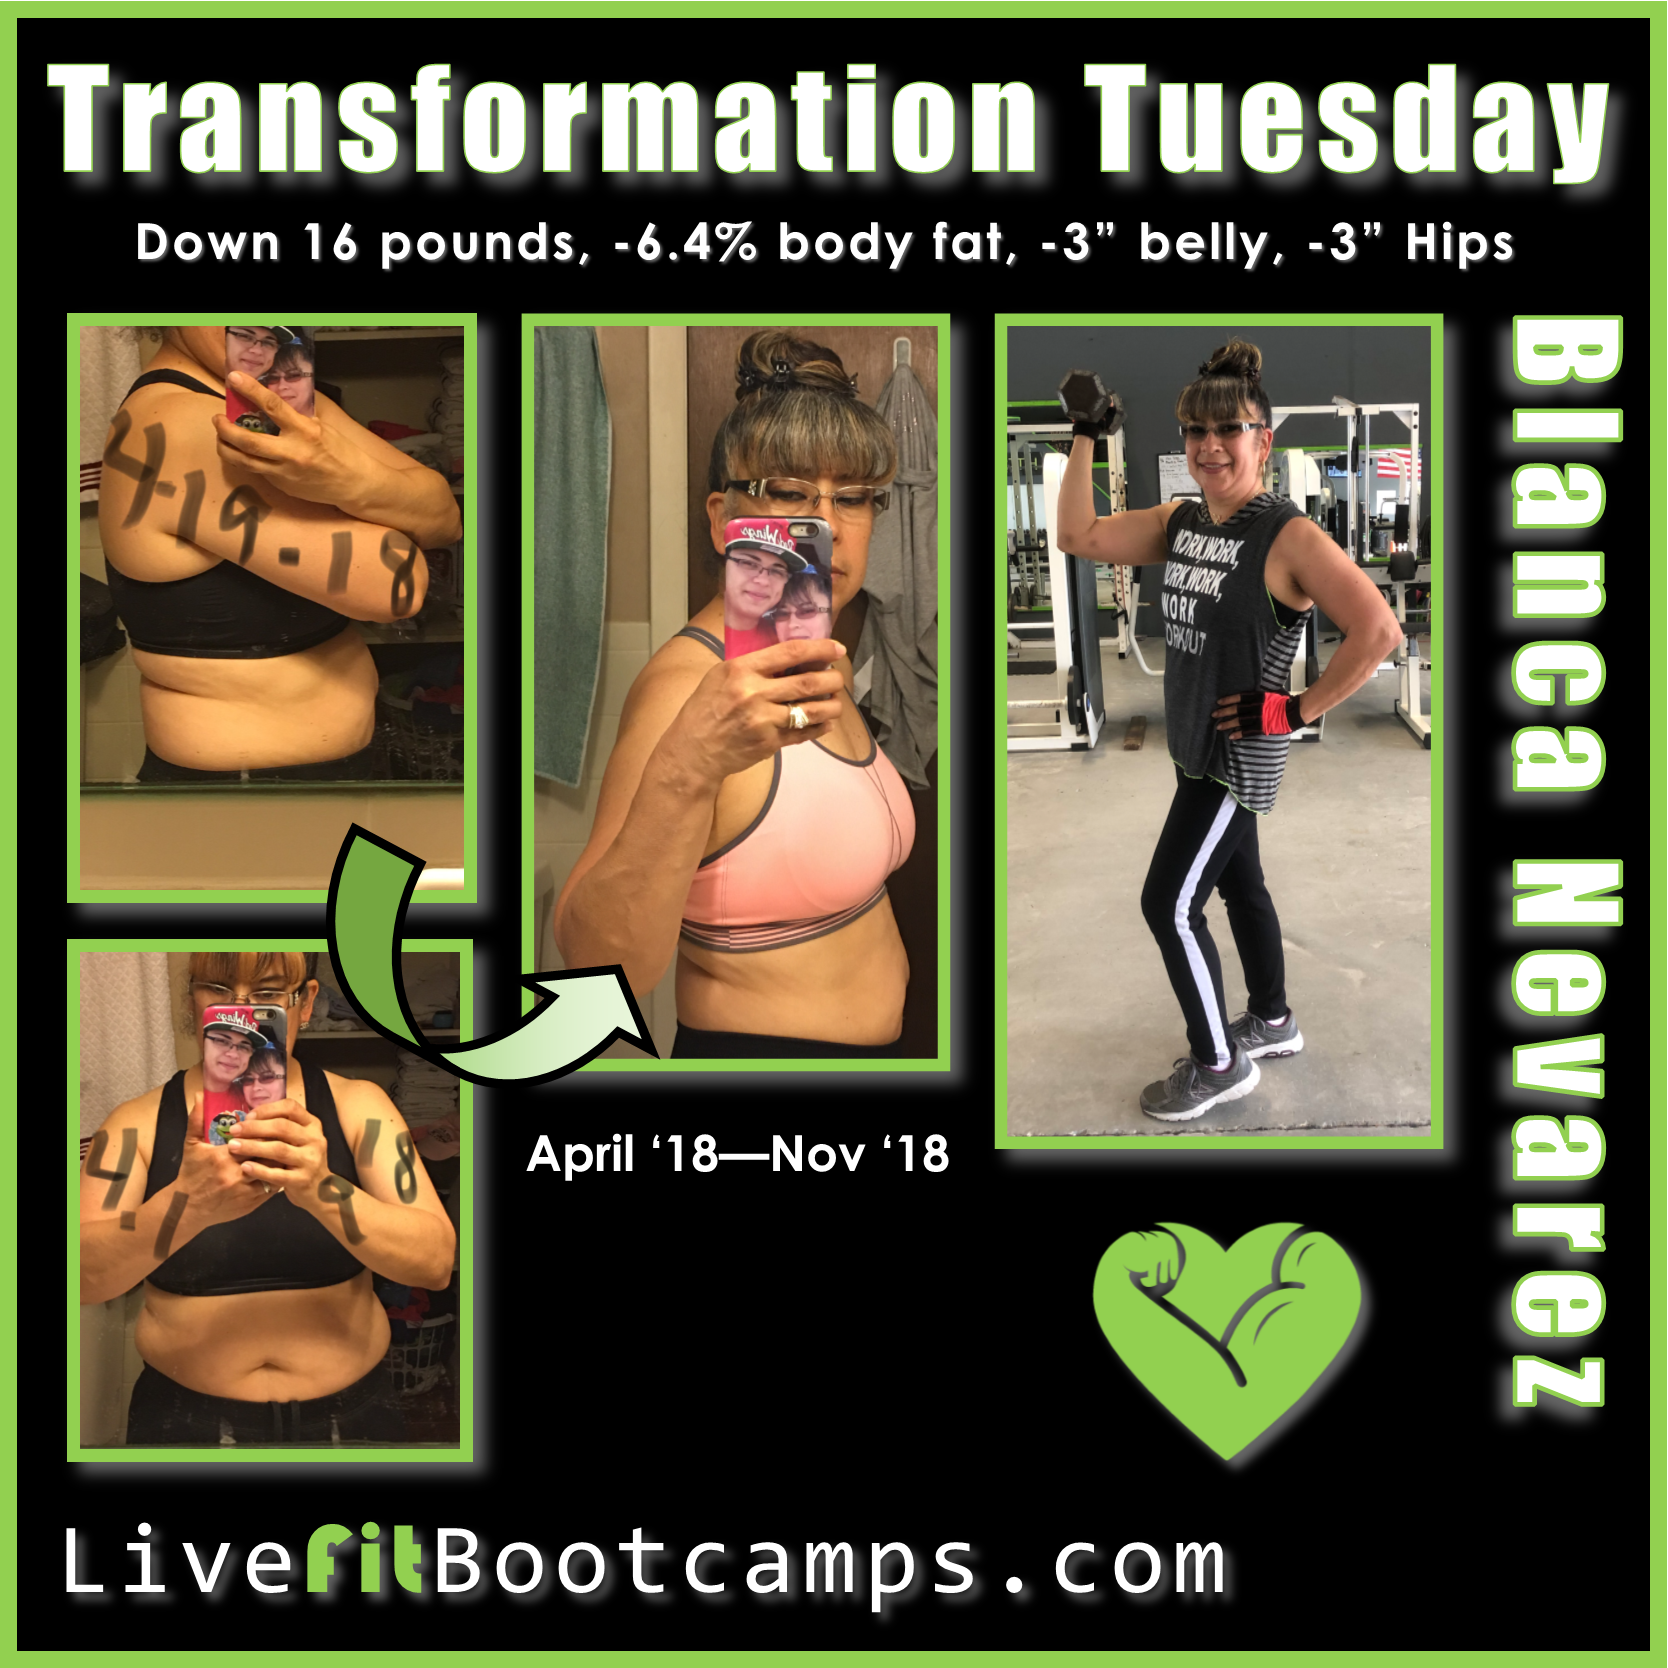 Blanca transformation tuesday weigt loss bootcamp